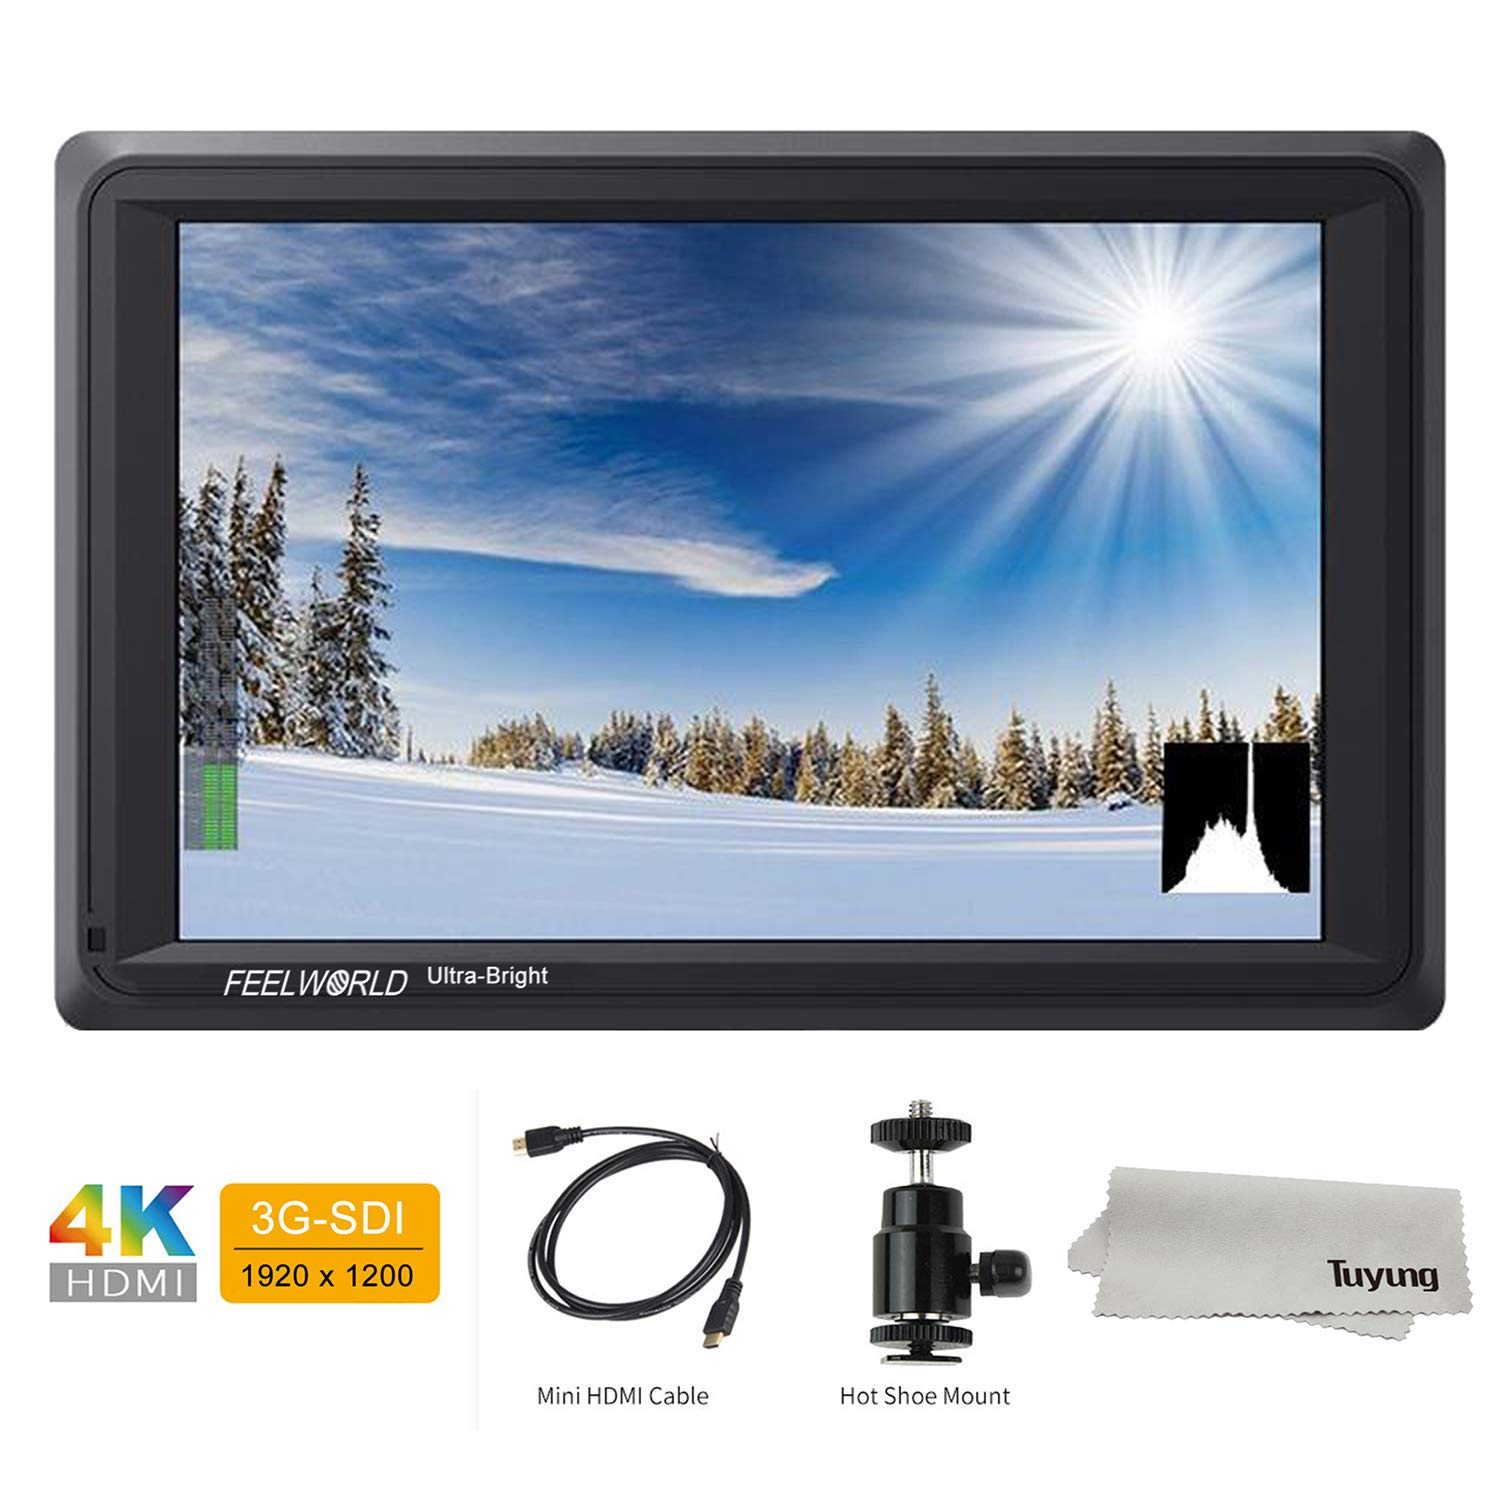 FEELWORLD FW279S 7 Inch 4K HDMI 3G-SDI 2200nit Daylight Viewable 1920x1200 On-Camera Field Monitor with Histogram, Focus Assist, Zebra Exposure, False Color, Check Field, Pixel to Pixel for DSLR Camer by FEELWORLD